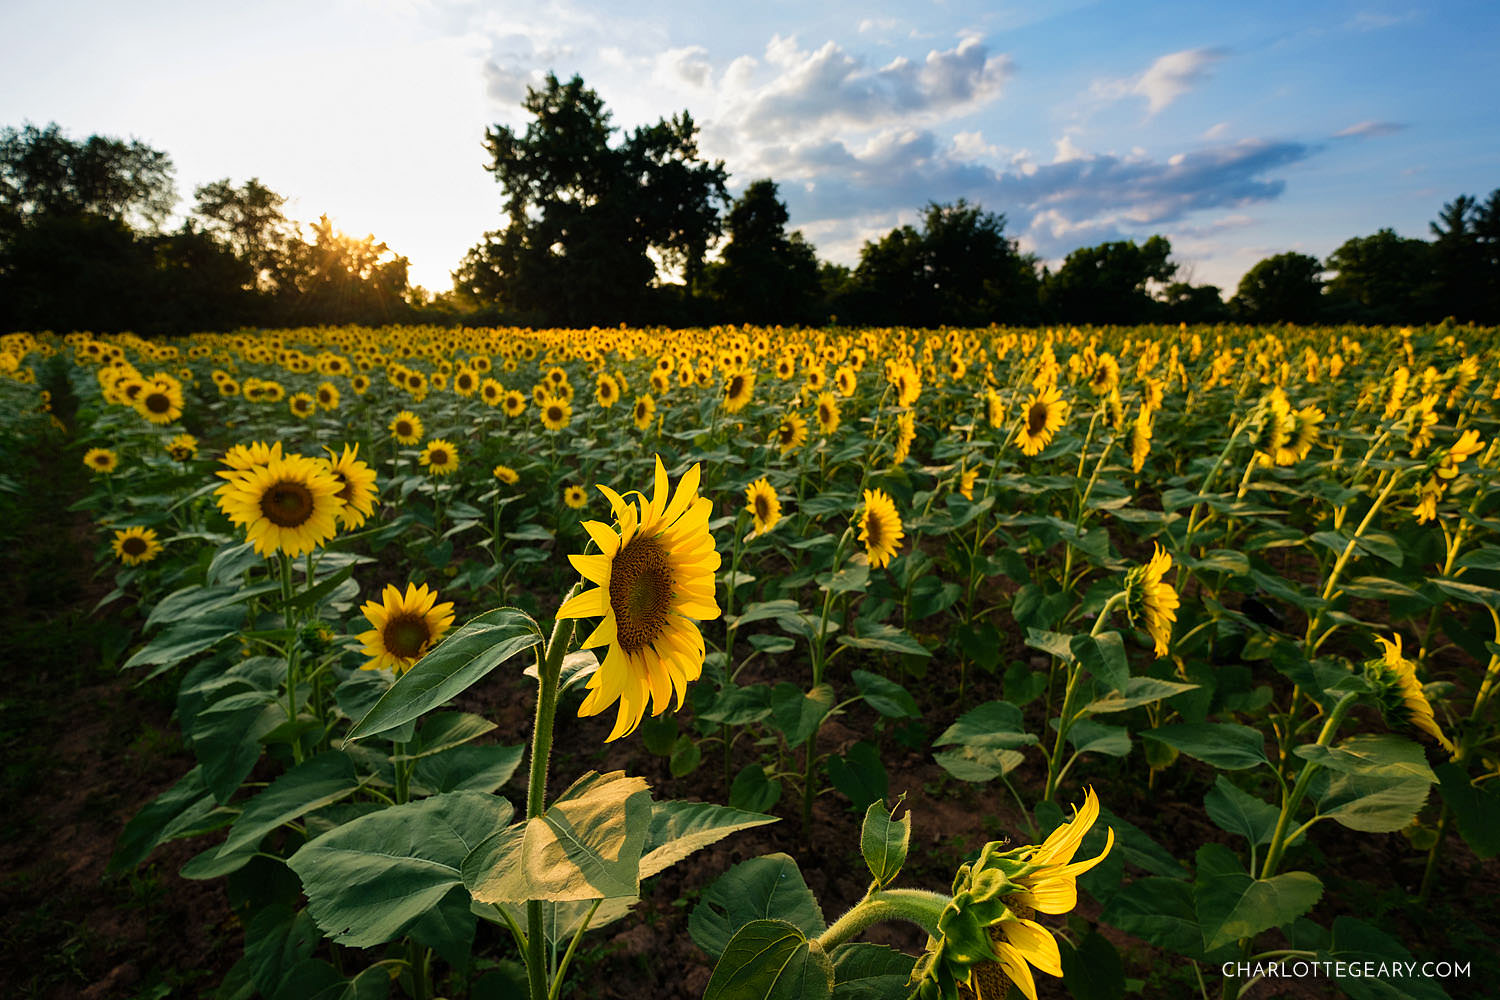 McKee-Beshers sunflowers